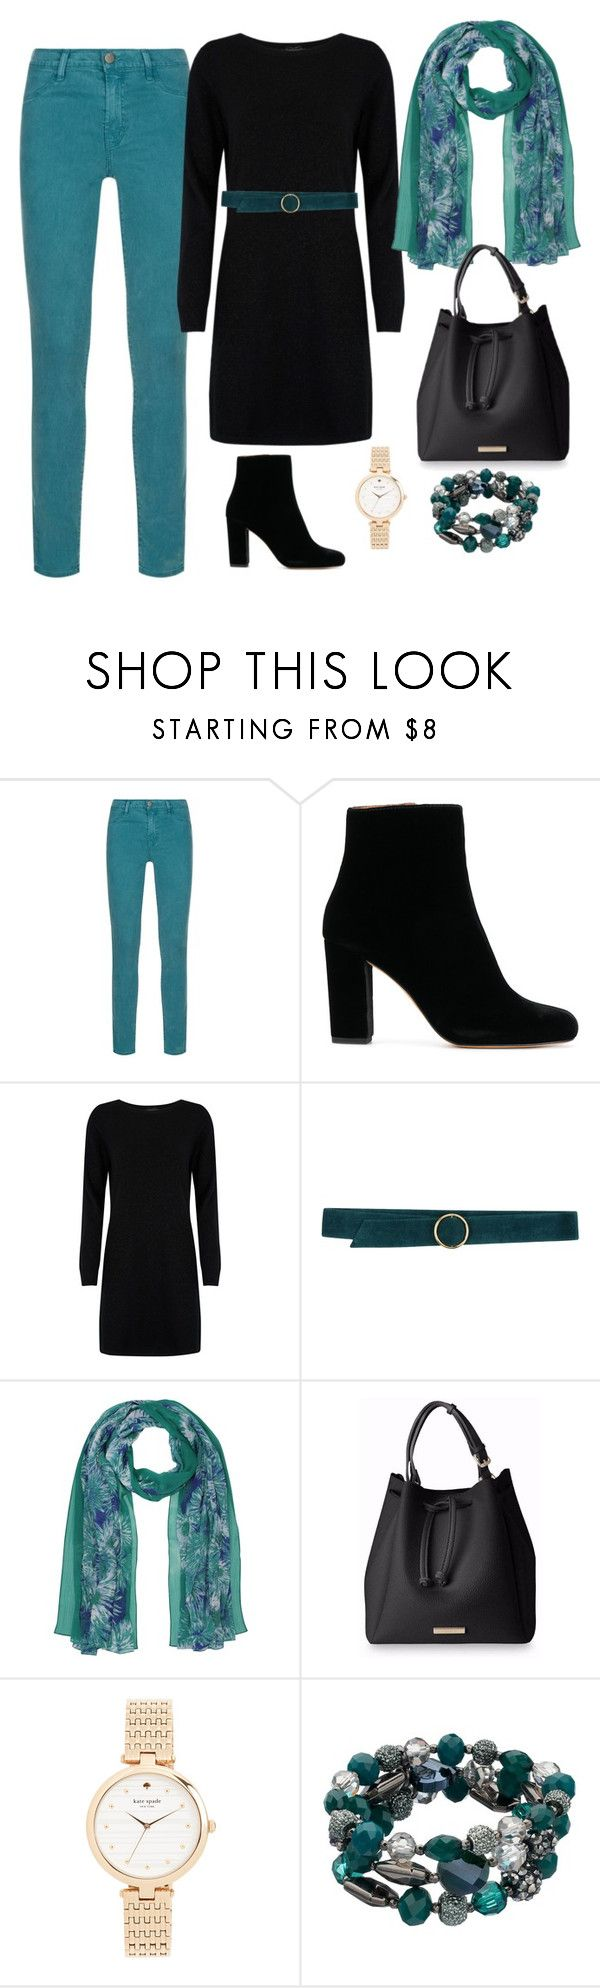 """""""friendsgiving"""" by maryamj70 on Polyvore featuring J Brand, Cocoa Cashmere, Carla G., M&Co and Kate Spade"""